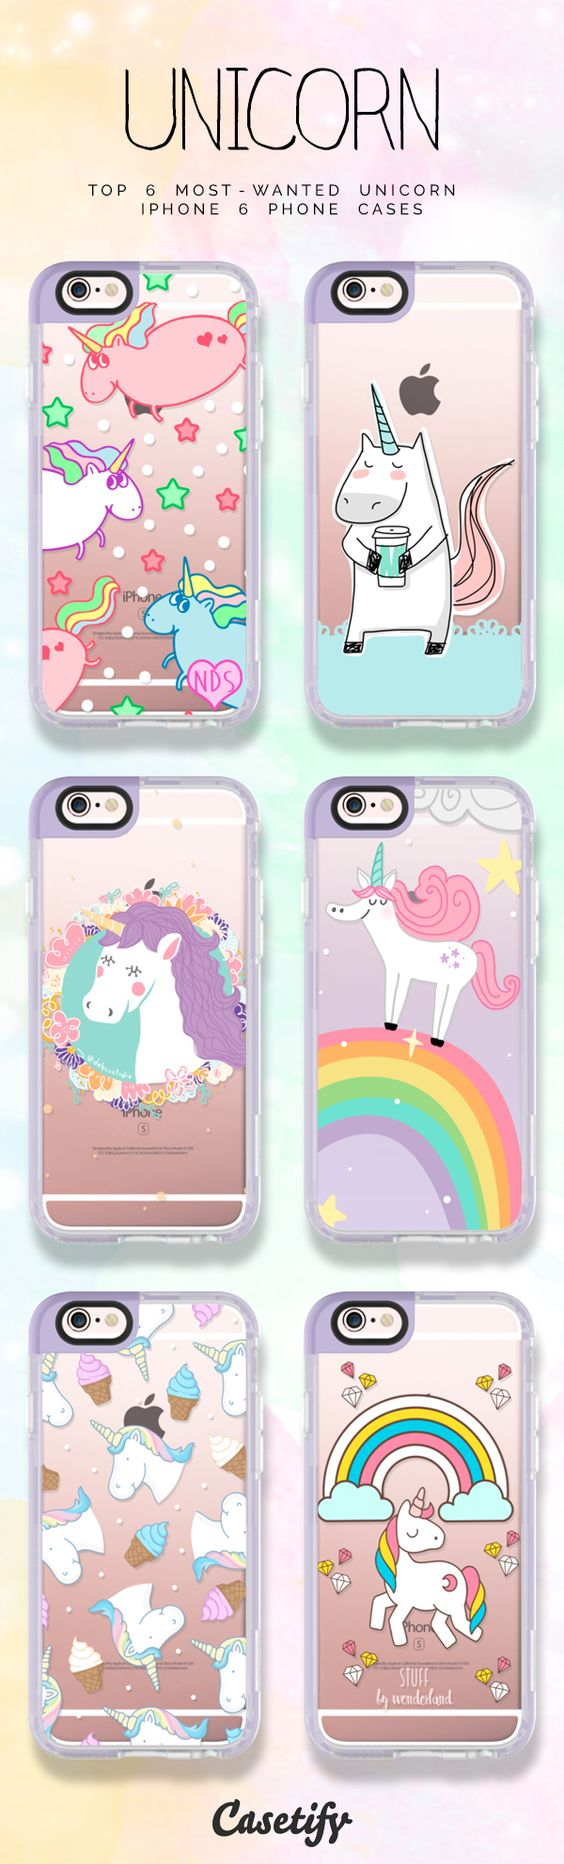 Top 6 most wanted pastel unicorn iPhone 6 protective phone cases   Click through to shop these pastel iPhone phone case ideas >>> https://www.casetify.com/artworks/fAH8DQueQO #animal   @casetify